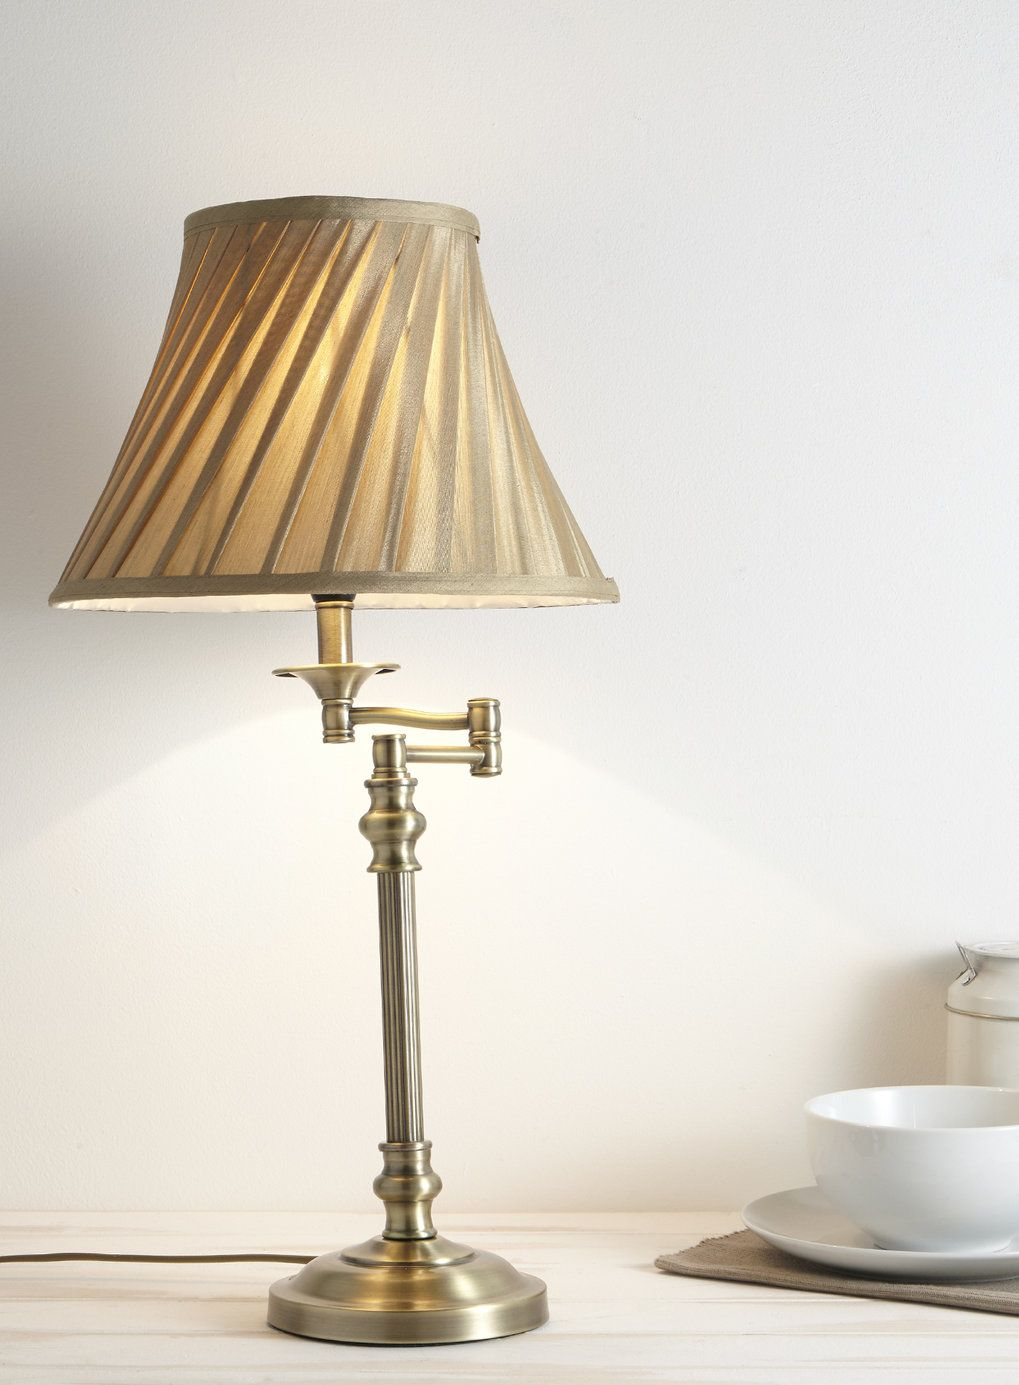 Swing Arm Table Lamp - BHS | Lamps | Pinterest | Bhs, Bedrooms and Room